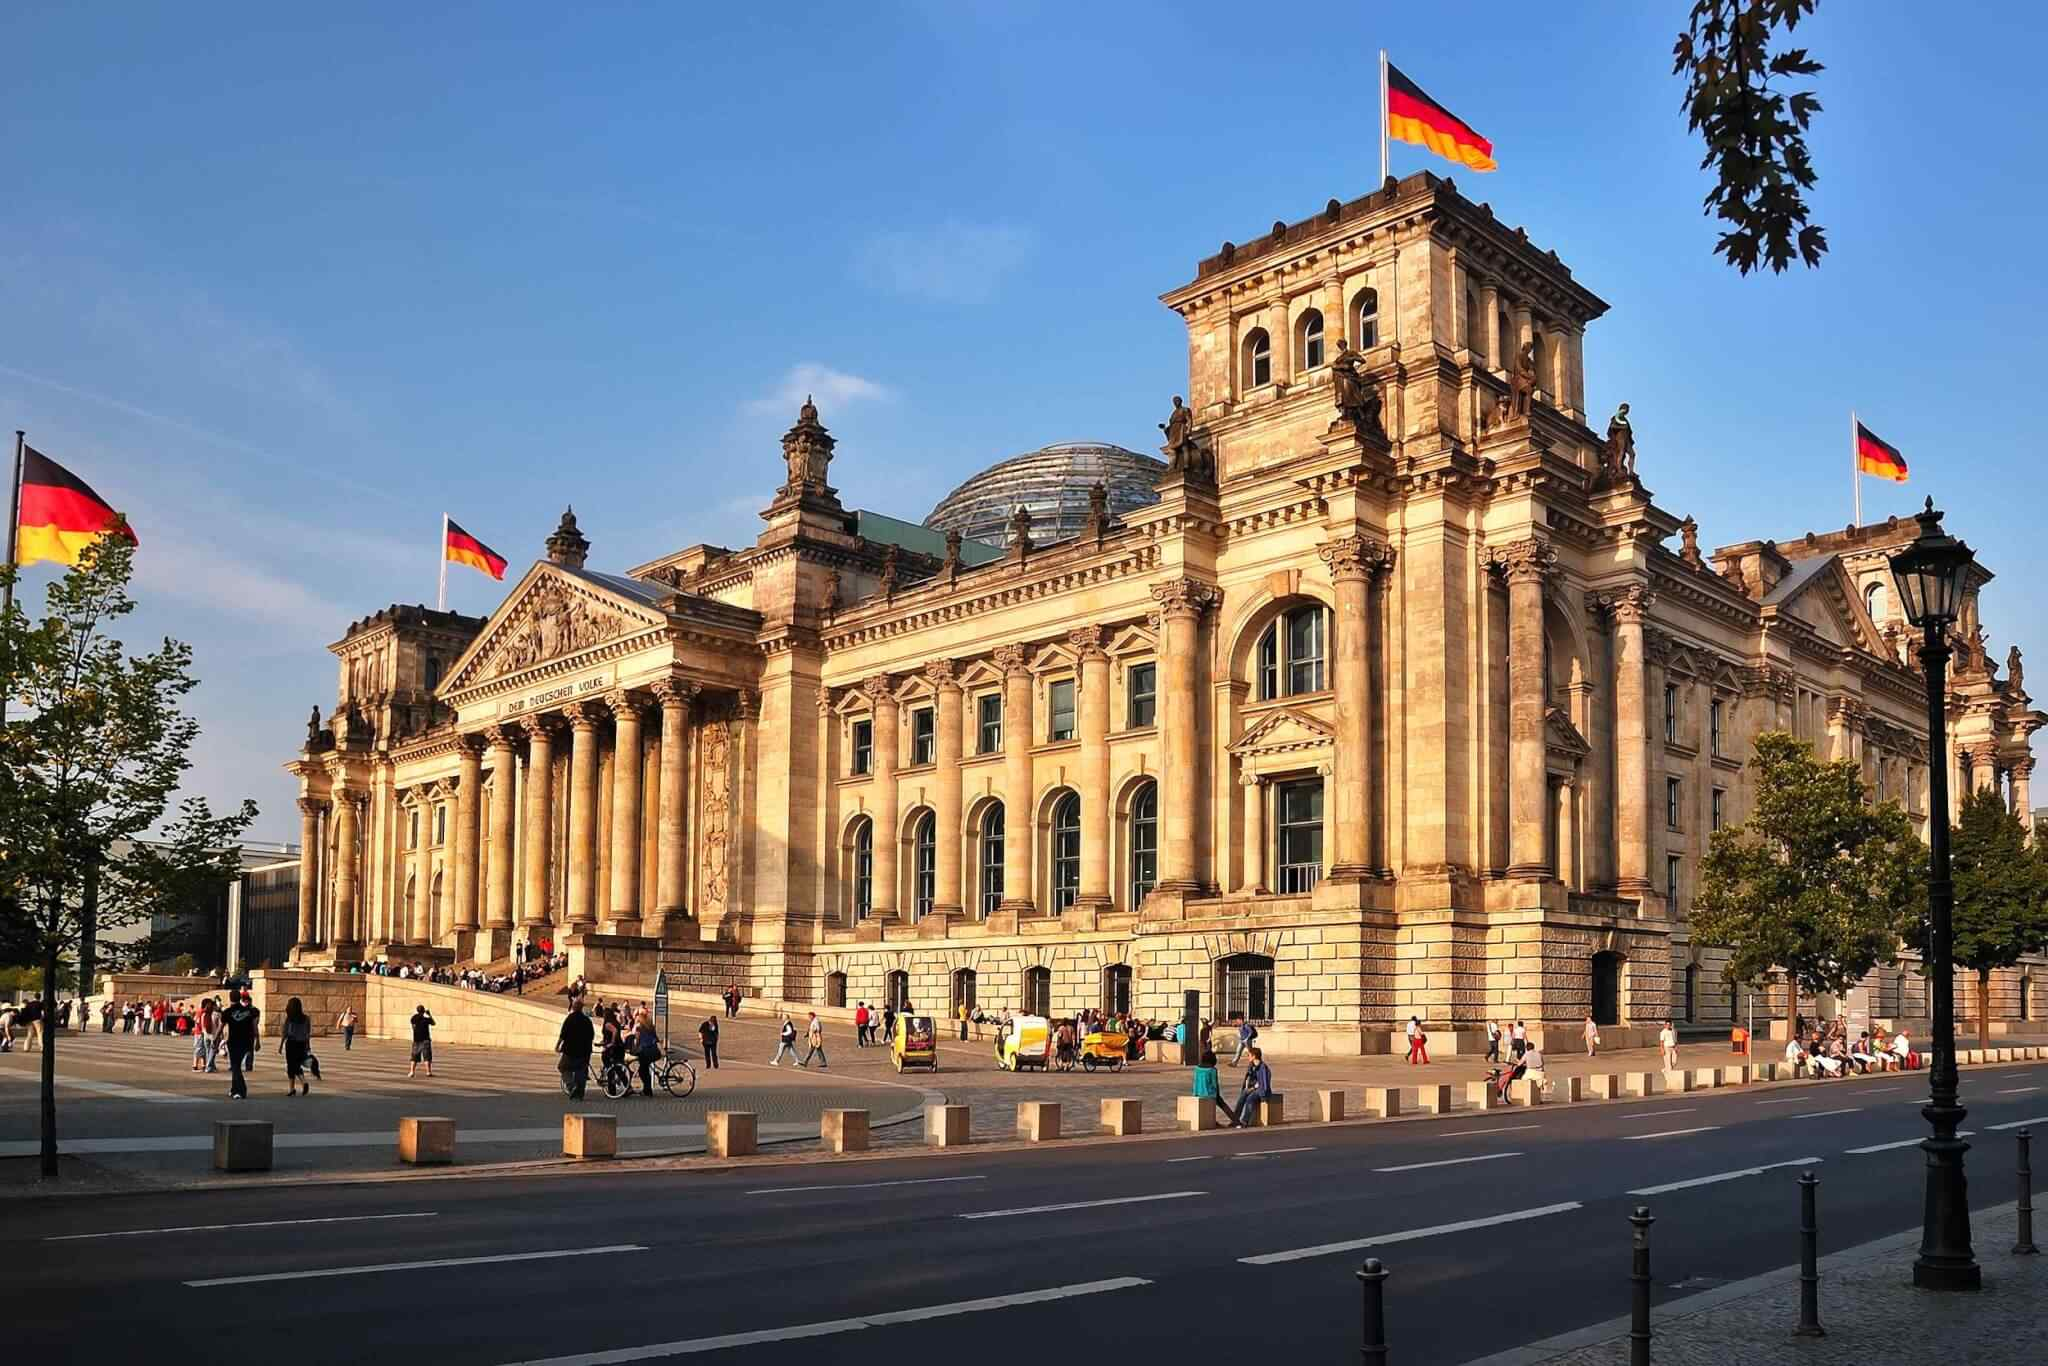 https://oltintourism.uz/wp-content/uploads/2019/06/destination-berlin-01.jpg